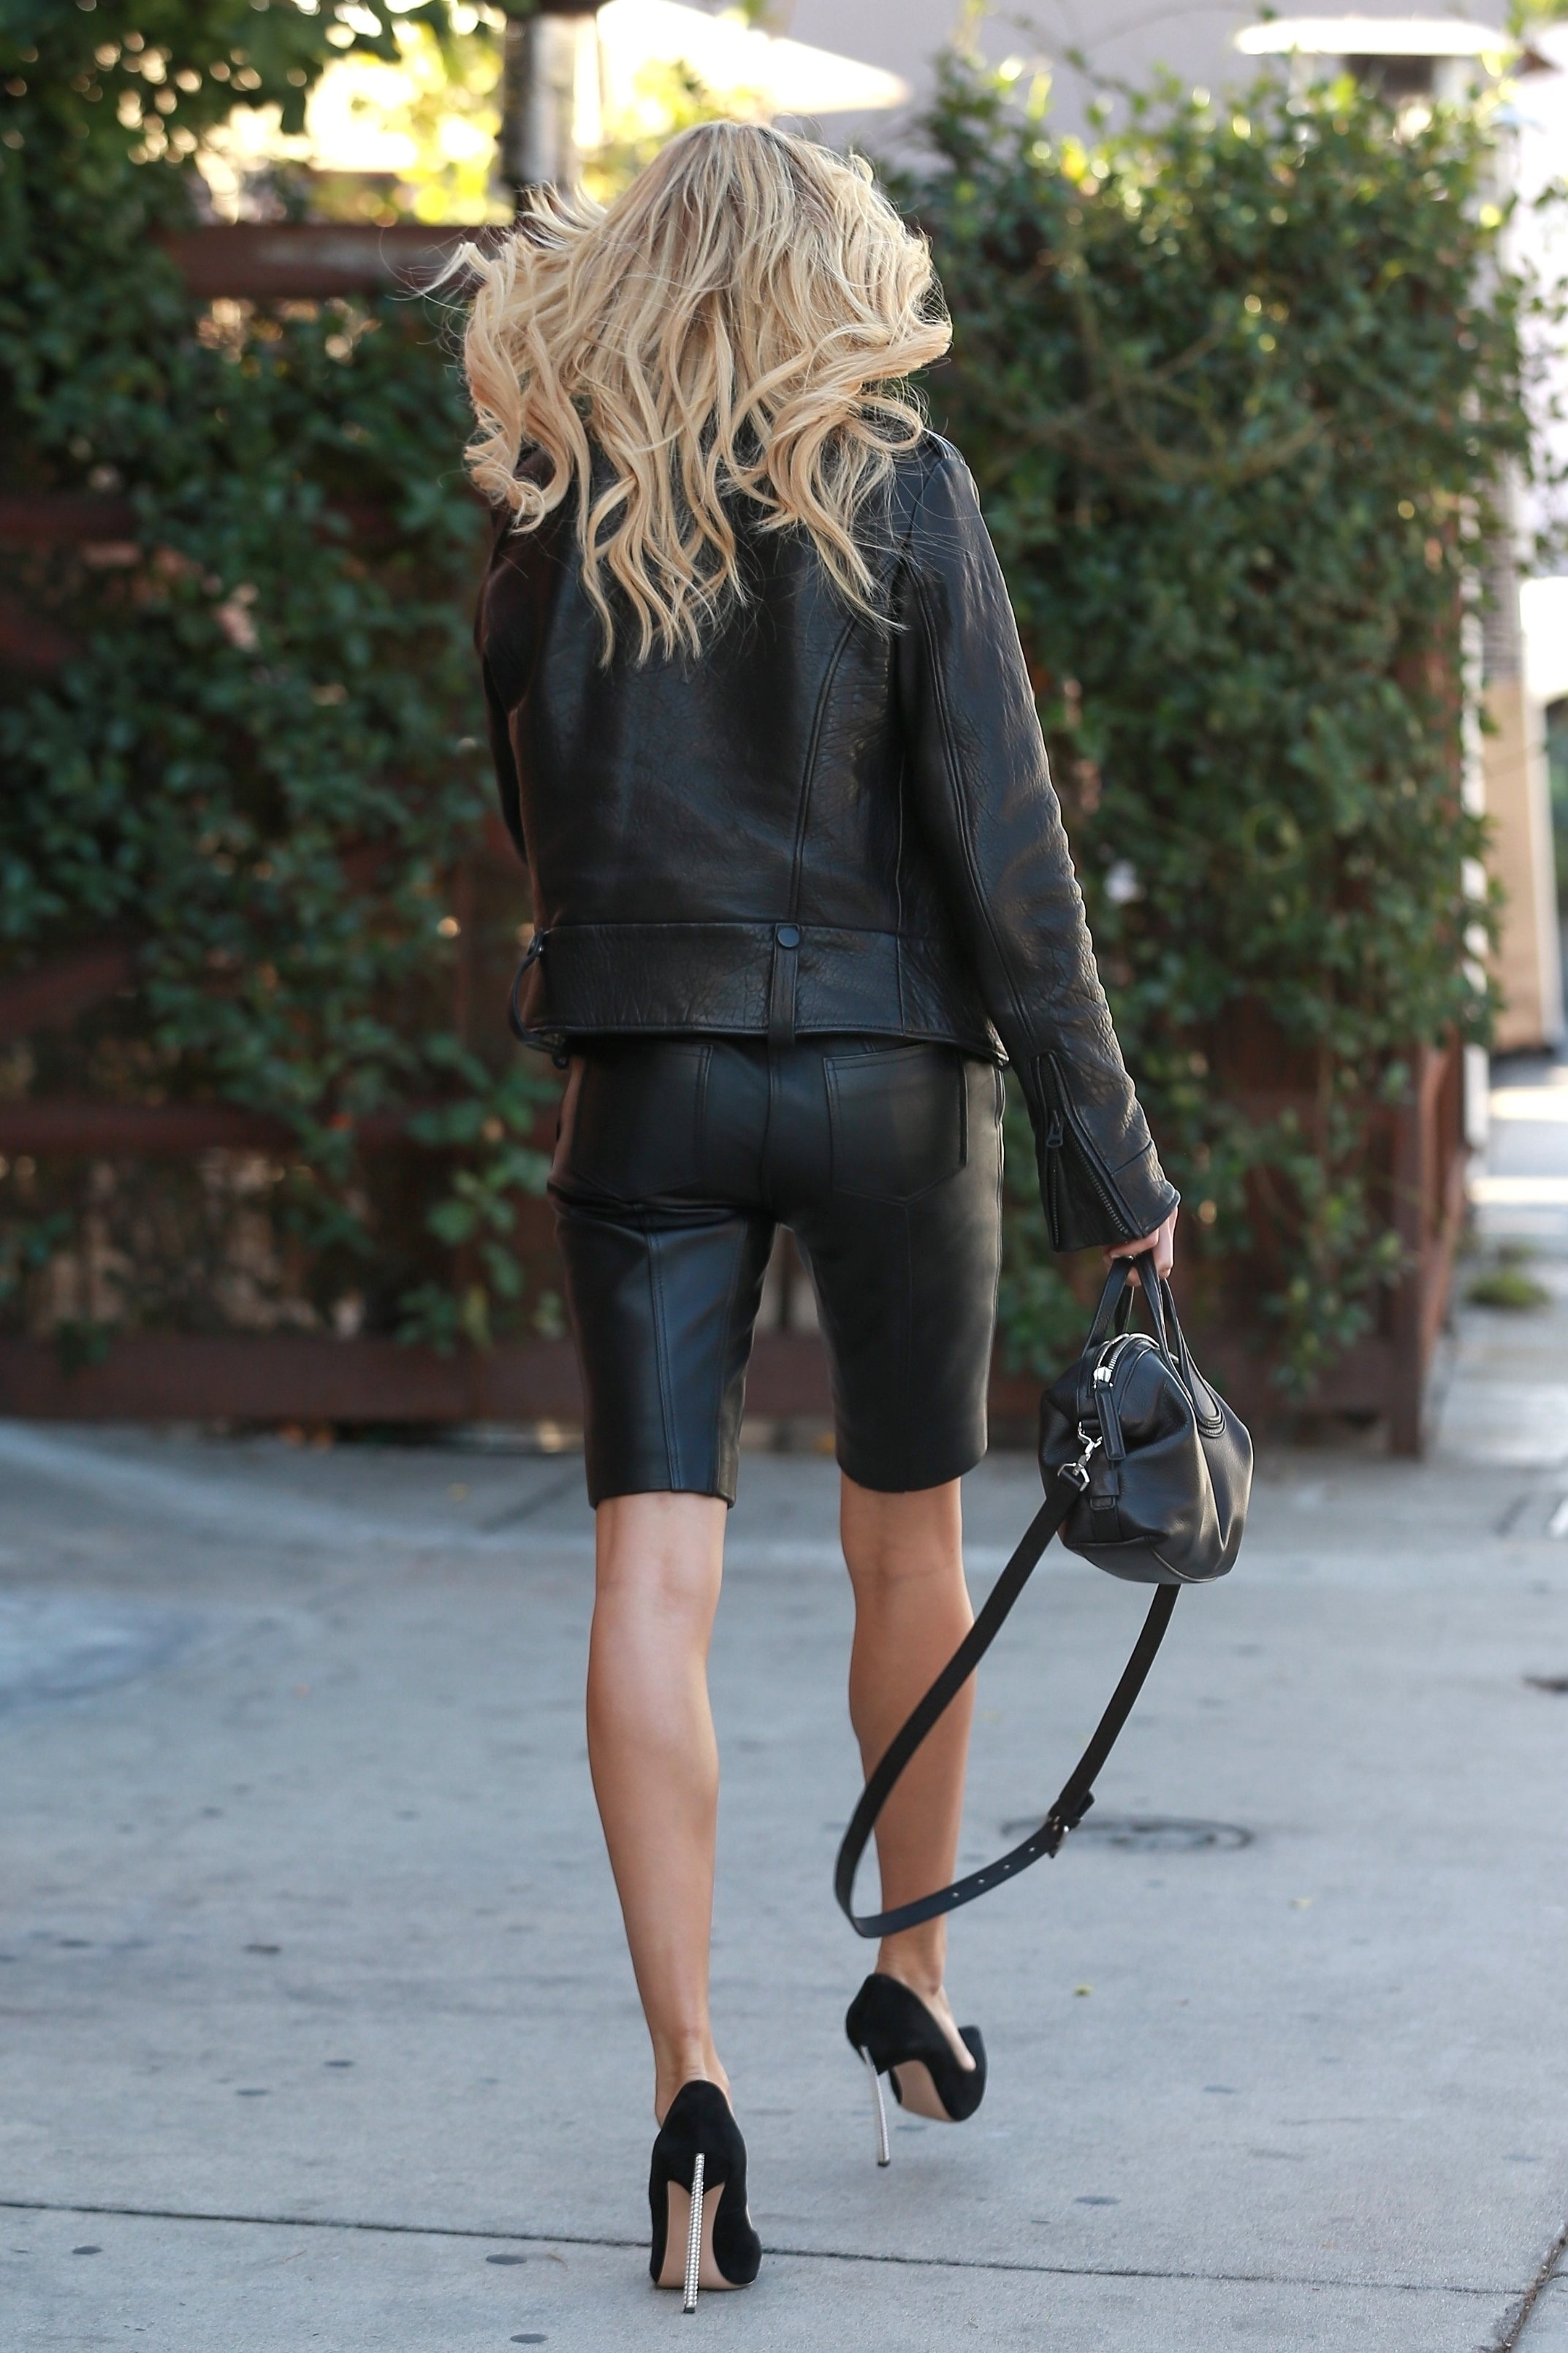 Beverly Hills, CA  - *EXCLUSIVE*  - Hailey Baldwin goes lunch in Beverly Hills on Tuesday. The blonde model is wearing leather bermuda shorts and a crop top paired with a leather moto jacket and heels. As temperatures reach the upper 80s today in Los Angeles, Hailey still manages to show some skin in her leather outfit.  Pictured: Hailey Baldwin  BACKGRID USA 17 OCTOBER 2017, Image: 353253475, License: Rights-managed, Restrictions: , Model Release: no, Credit line: Profimedia, AKM-GSI